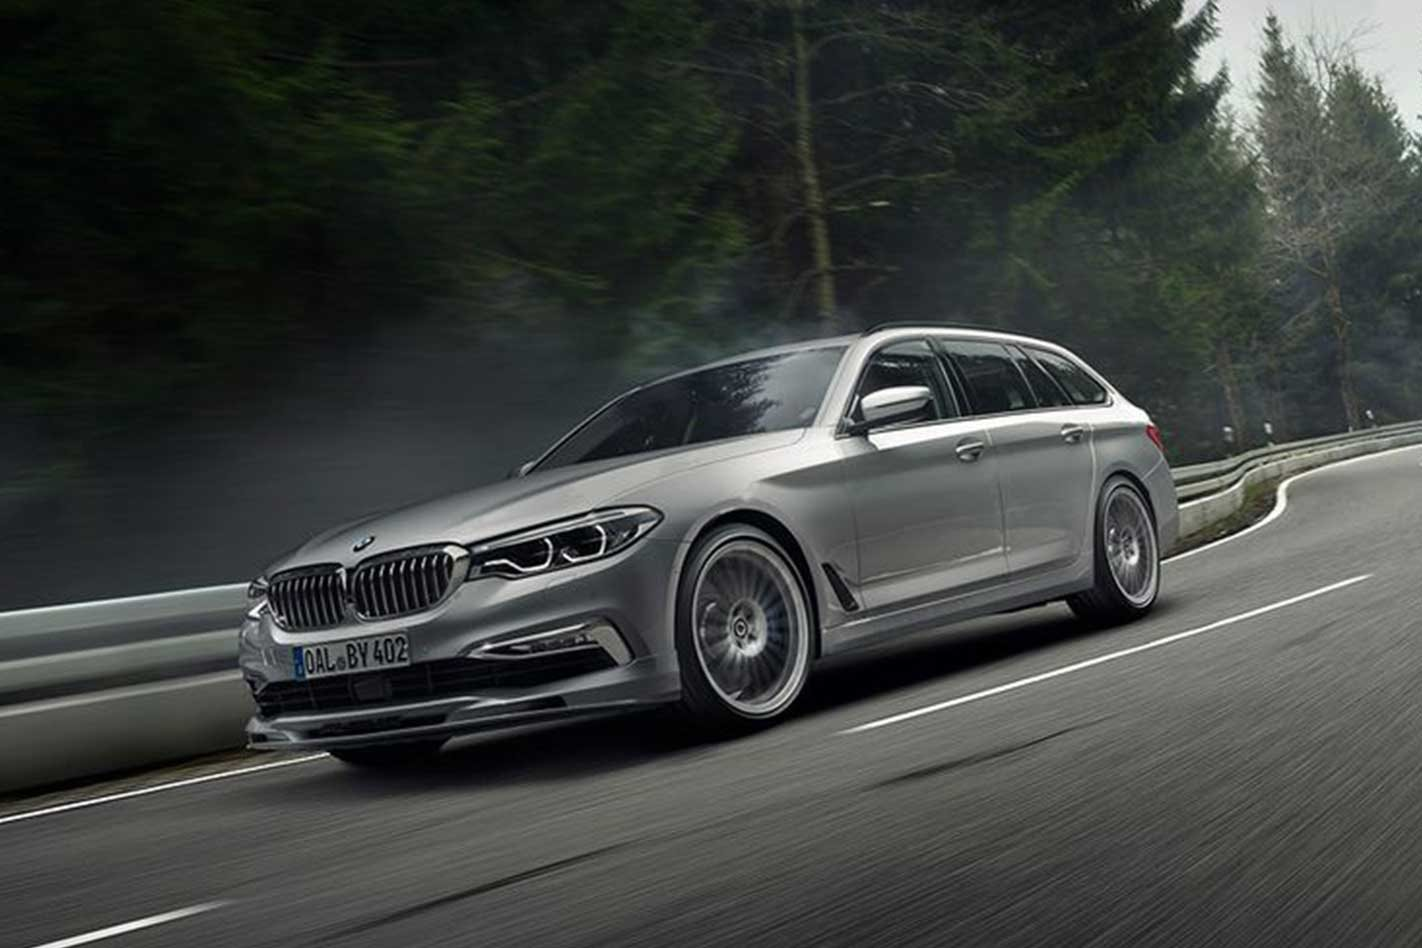 2019 Alpina B5 Touring Headed To Australia